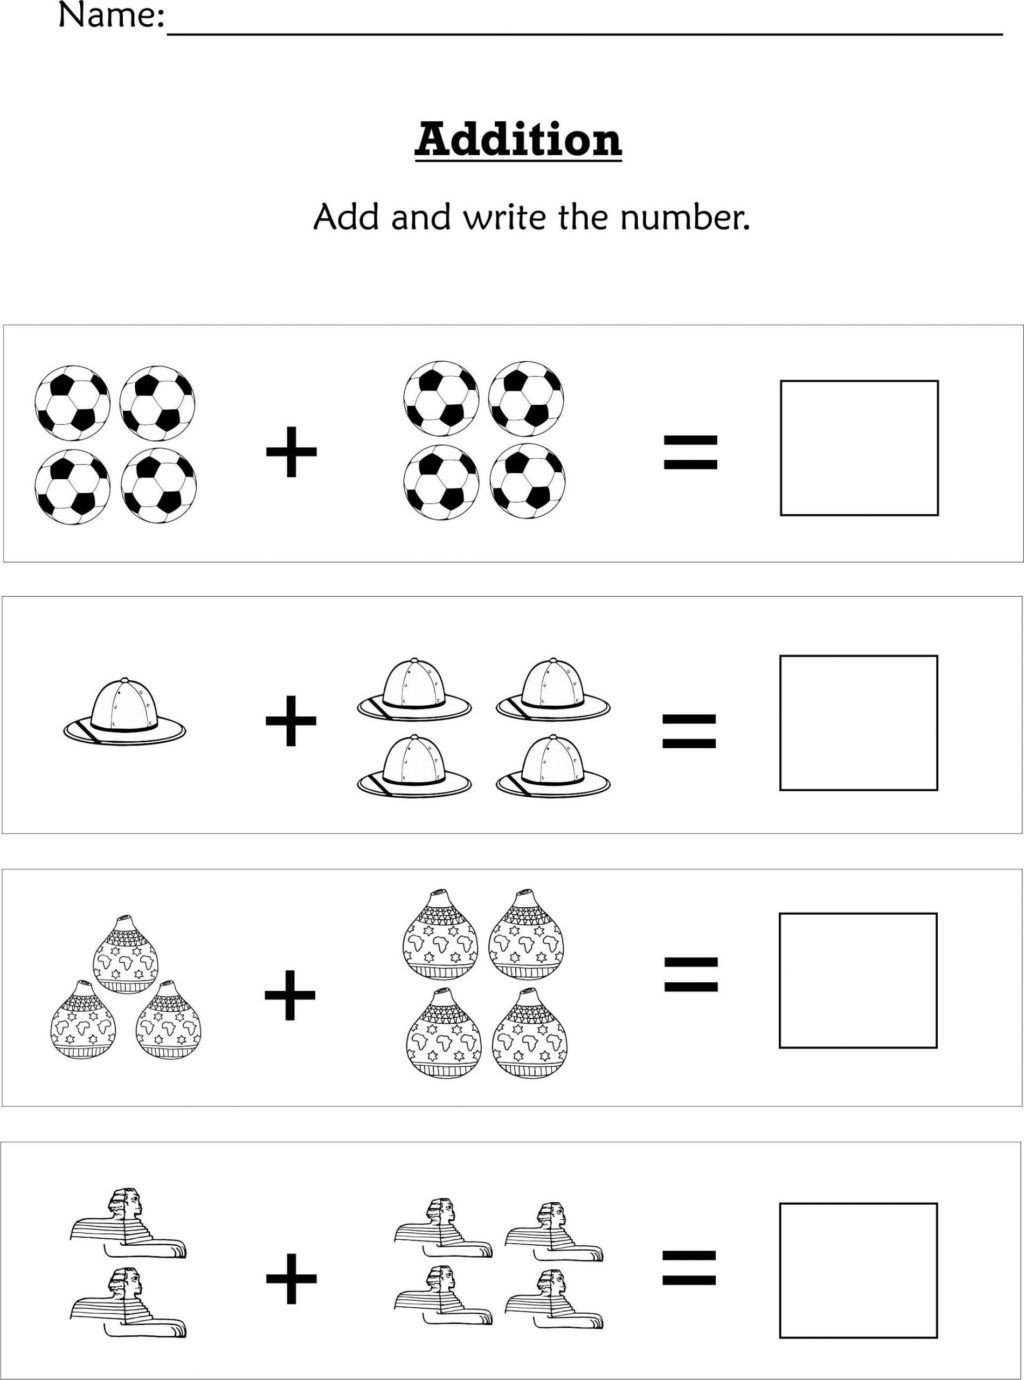 7 preschool worksheets pdf in 2020 pre k math worksheets